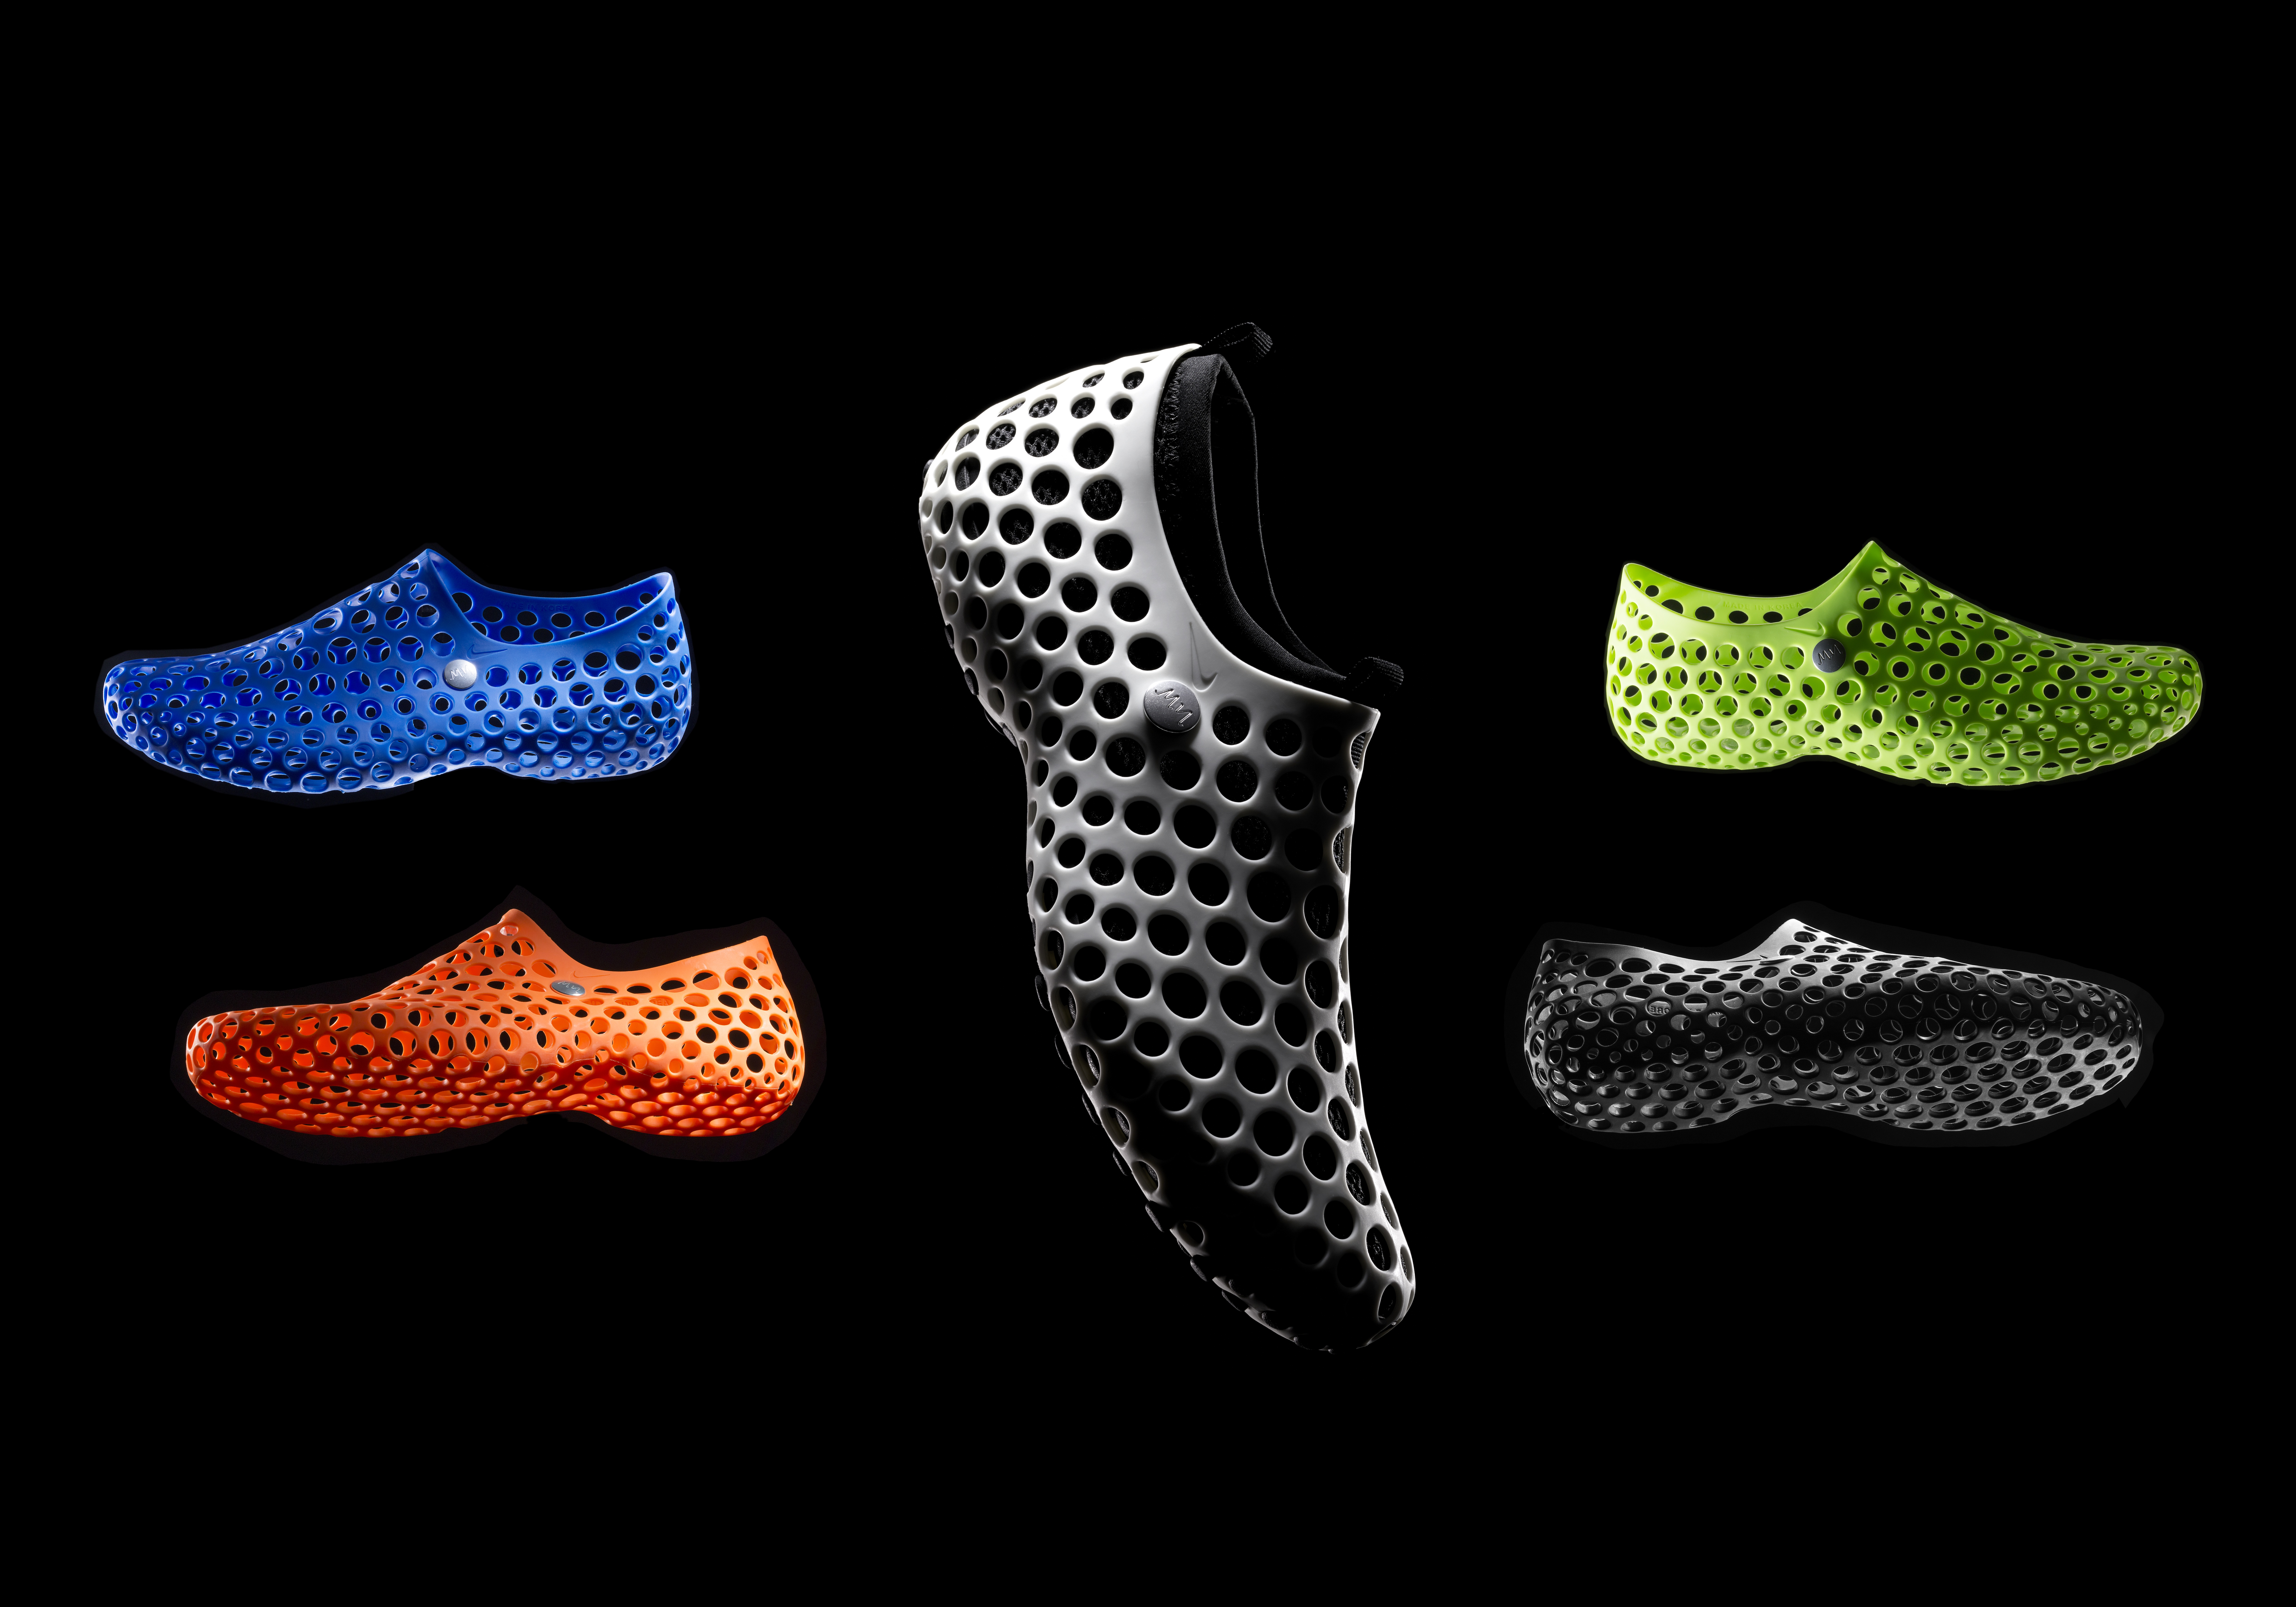 ba99064a0e12 ... The Nike ZVEZDOCHKA The Future Returns - Nike News ...